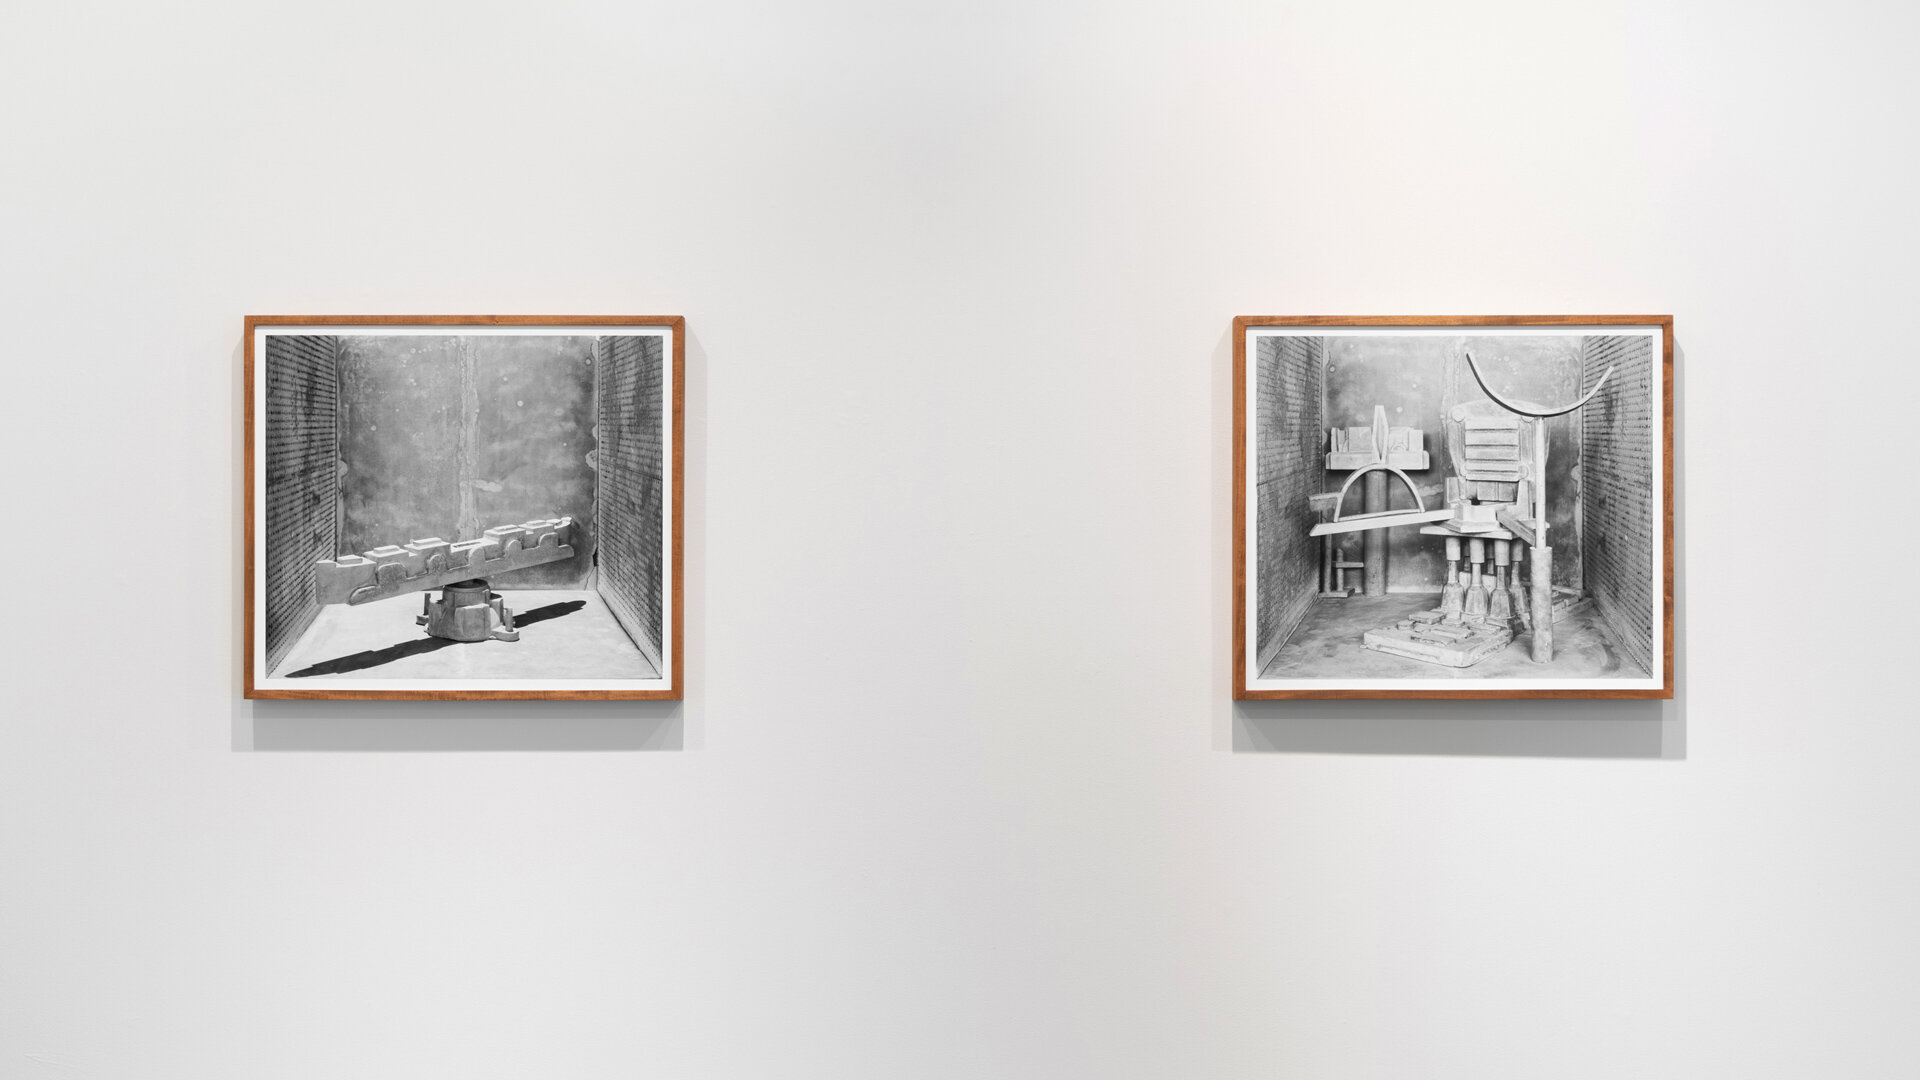 Stature No. 8  and  Stature No. 3  each: 2019, archival pigment print mounted on Sintra, artist frame 29 x 33 inches (framed), edition of 1 plus 1 AP